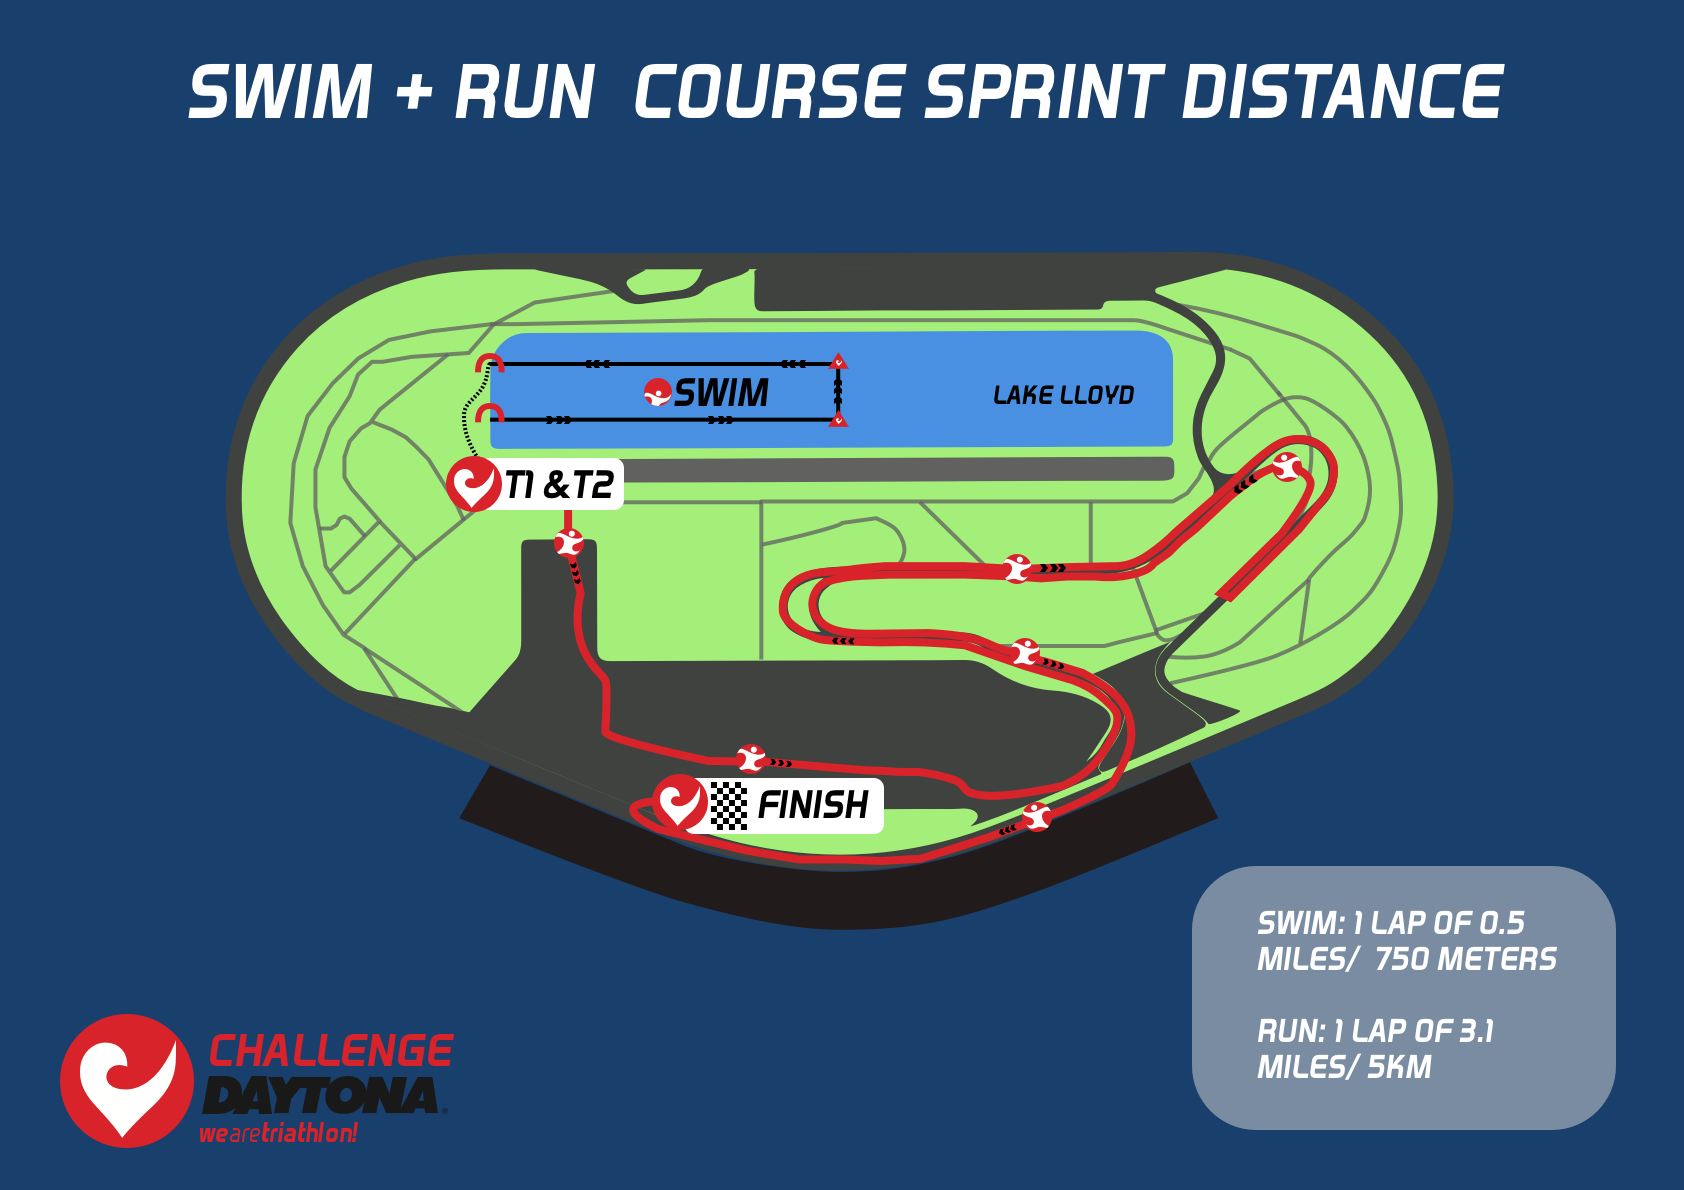 Triathlon Sprint Distance